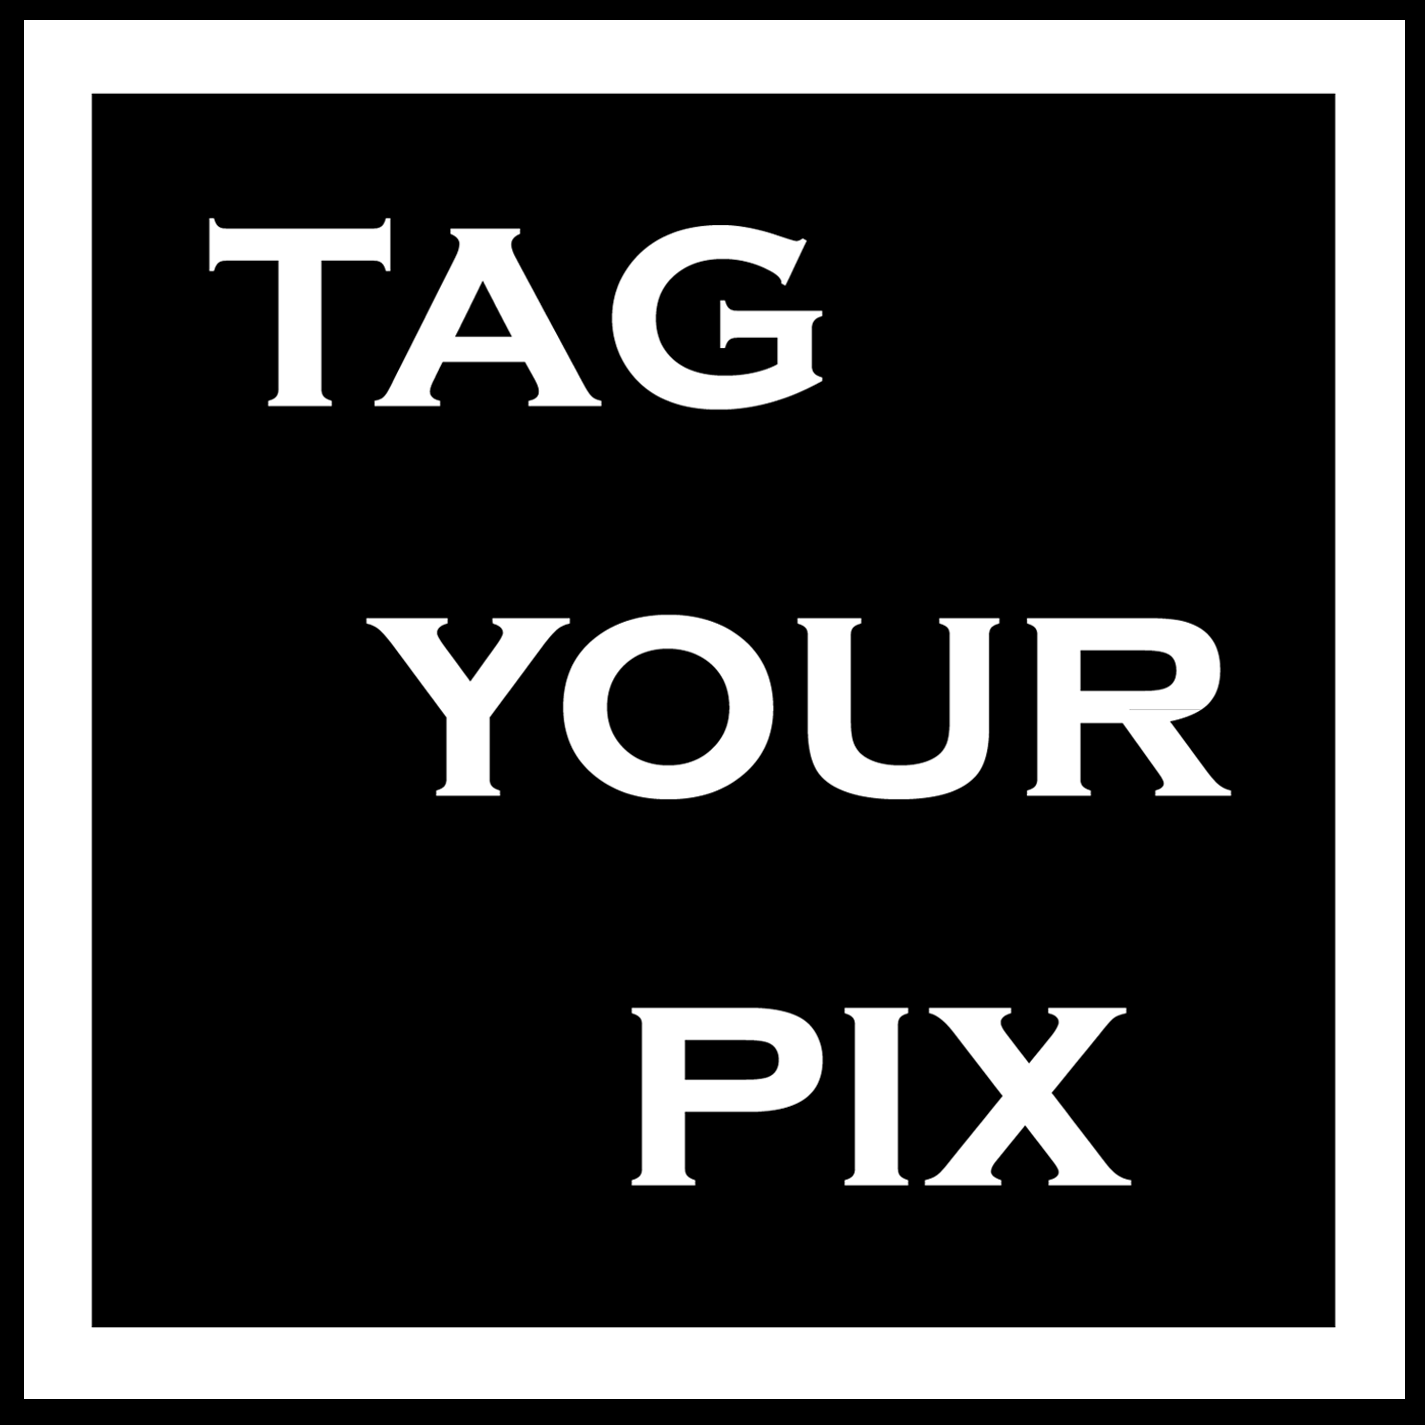 Tag Your Pix